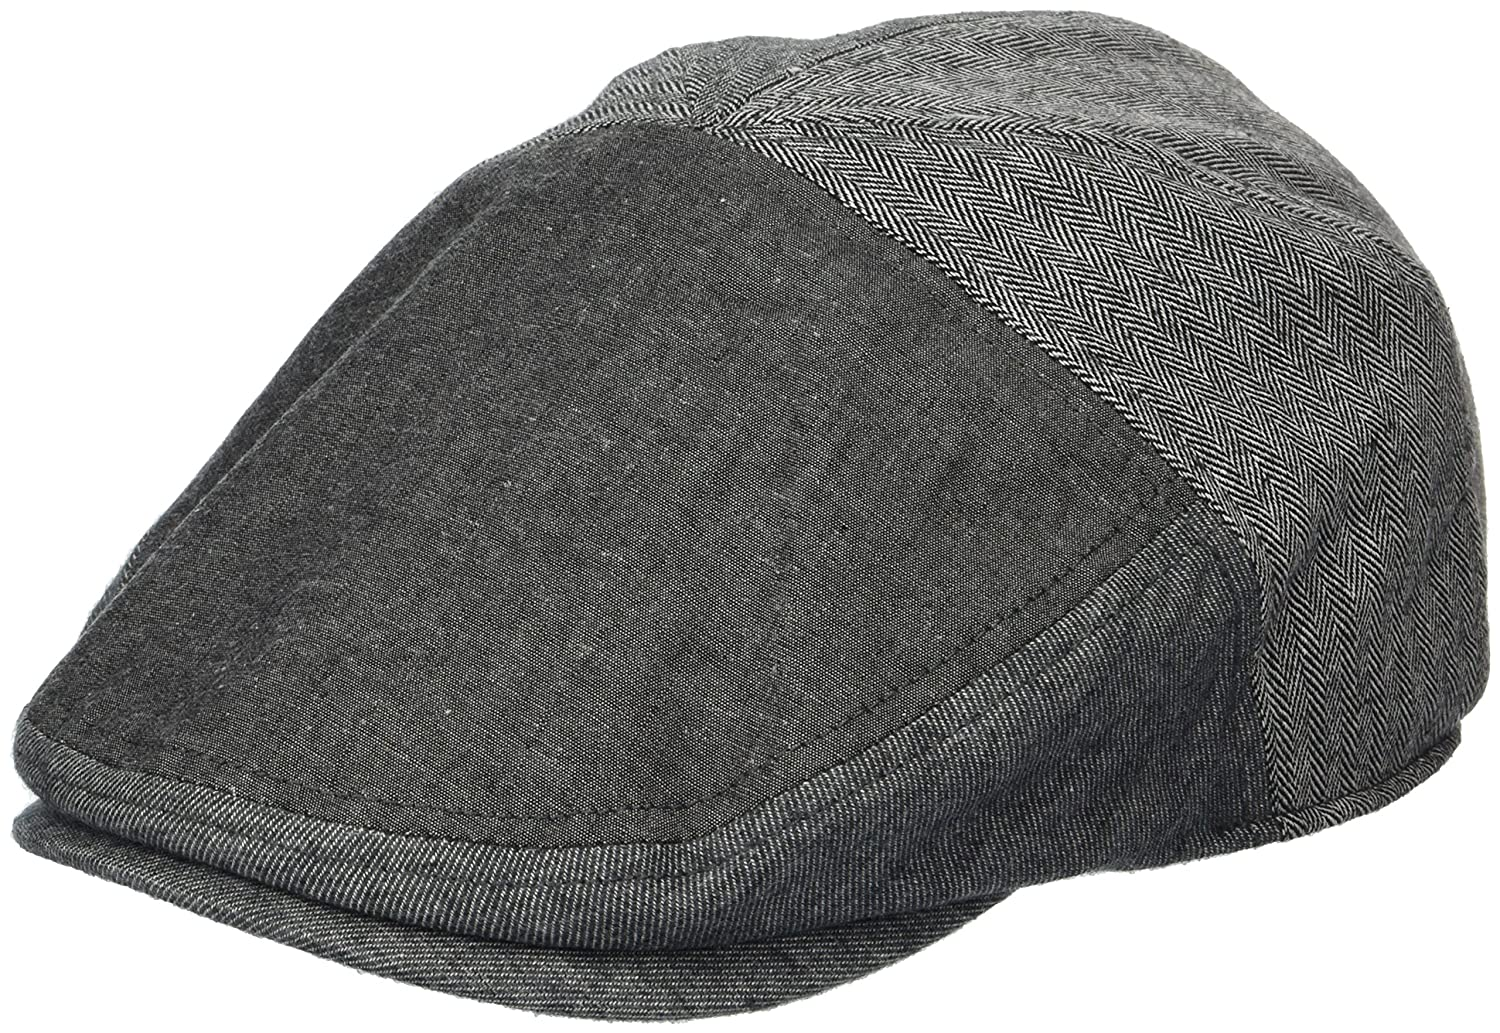 28d61e04a92 Dockers Men s Ivy Newsboy Hat at Amazon Men s Clothing store